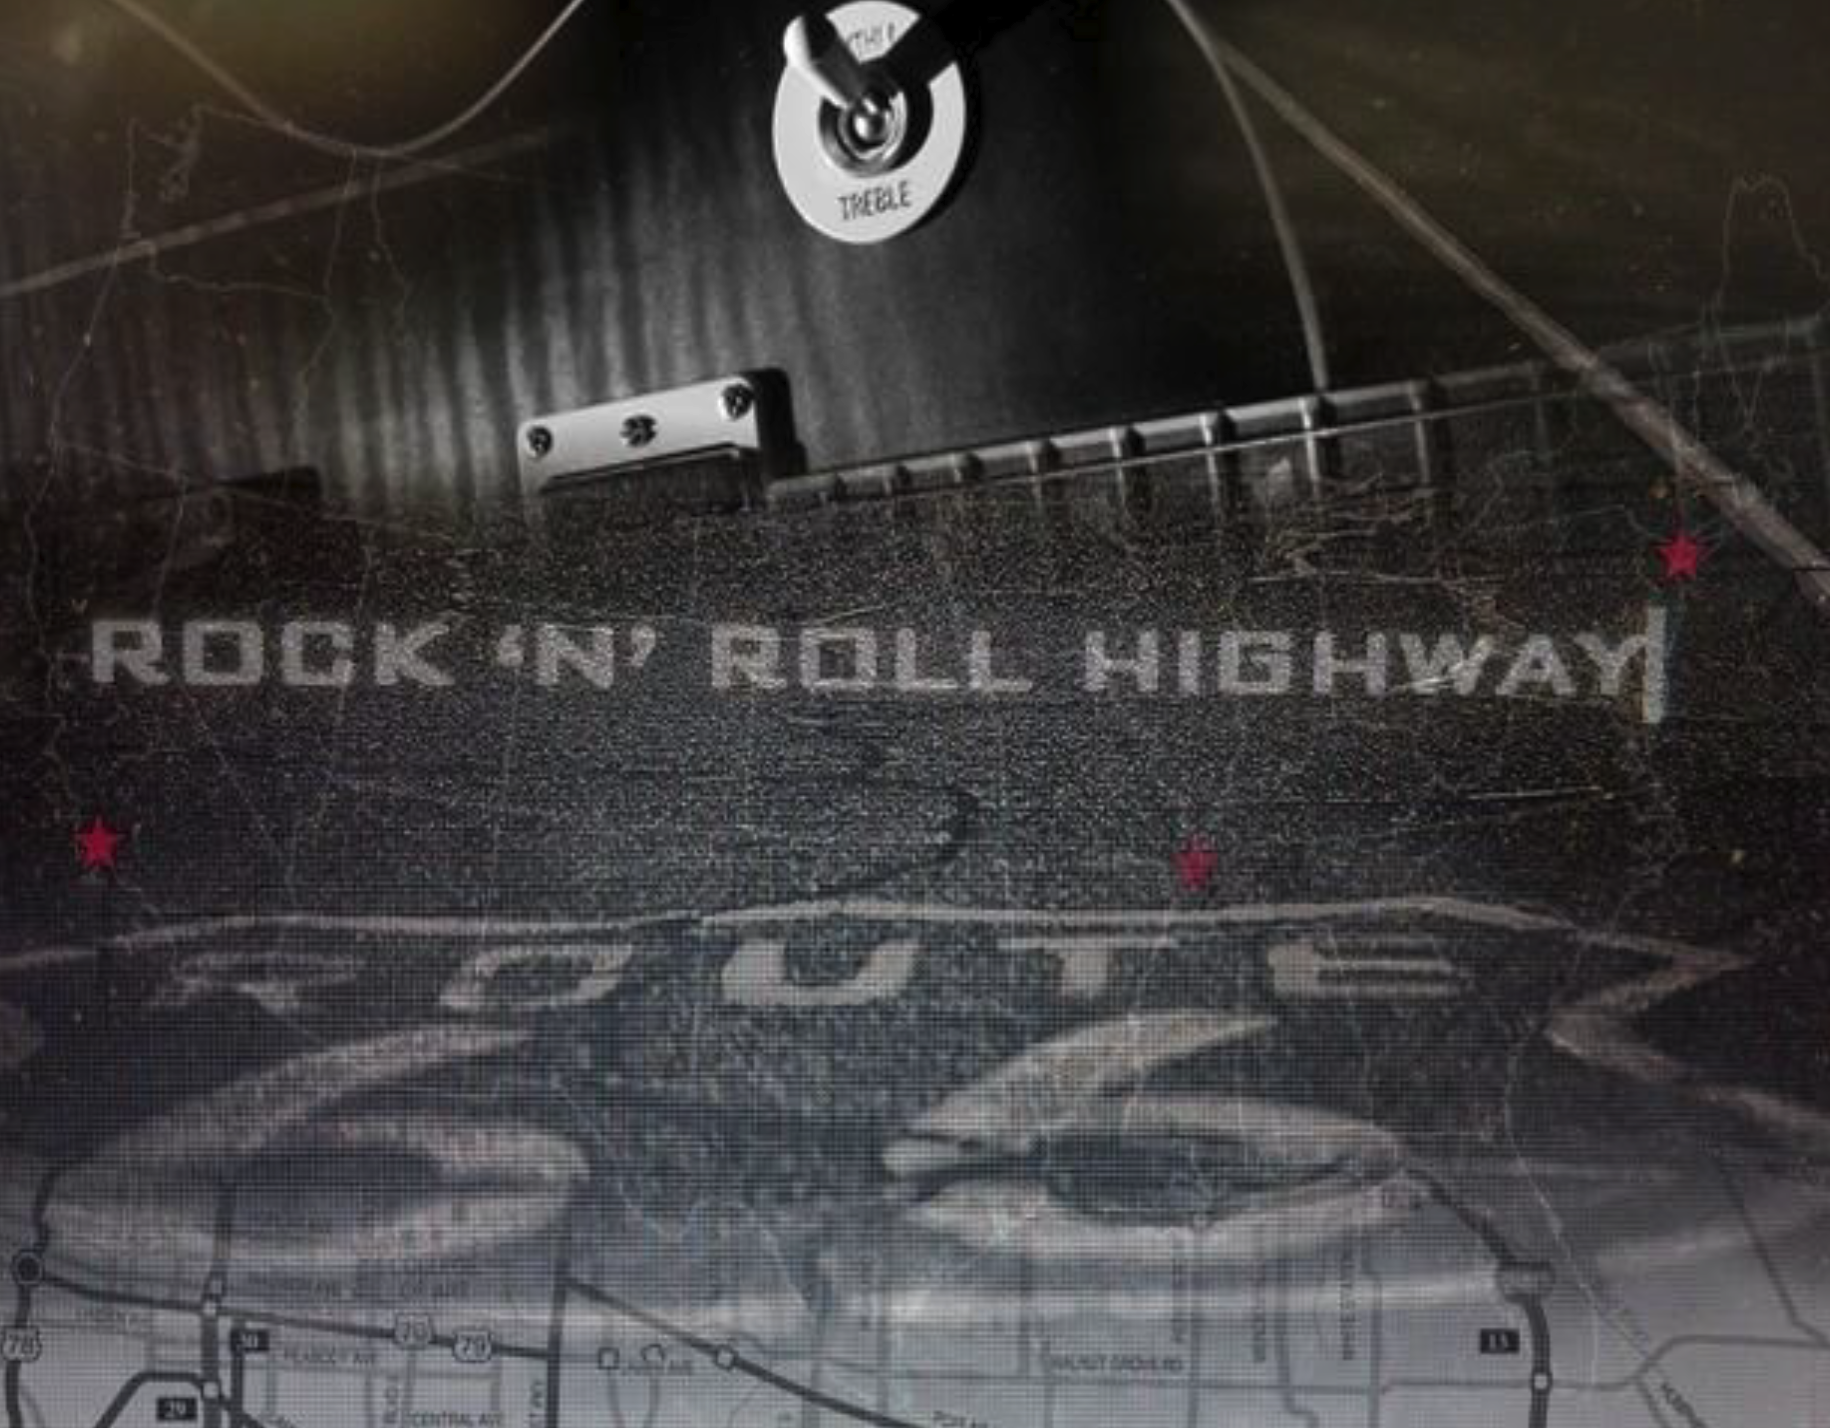 """ROCK 'N' ROLL HIGHWAY is a travel/history """"on the road"""" television series in which the Host and a weekly """"Special Guest"""" will visit the cities and locations that played a role in the history of rock and roll in the United States. The stories will unfold through a powerful bland of eyewitness accounts and interviews, rare archival footage and photos, and richly evocative cinematic location shooting.Each episode of ROCK 'N' ROLL HIGHWAY will tell a different story, taking the viewer to a new city, venue, recording studio, or location off the beaten path. - Rock'n'roll Highway"""